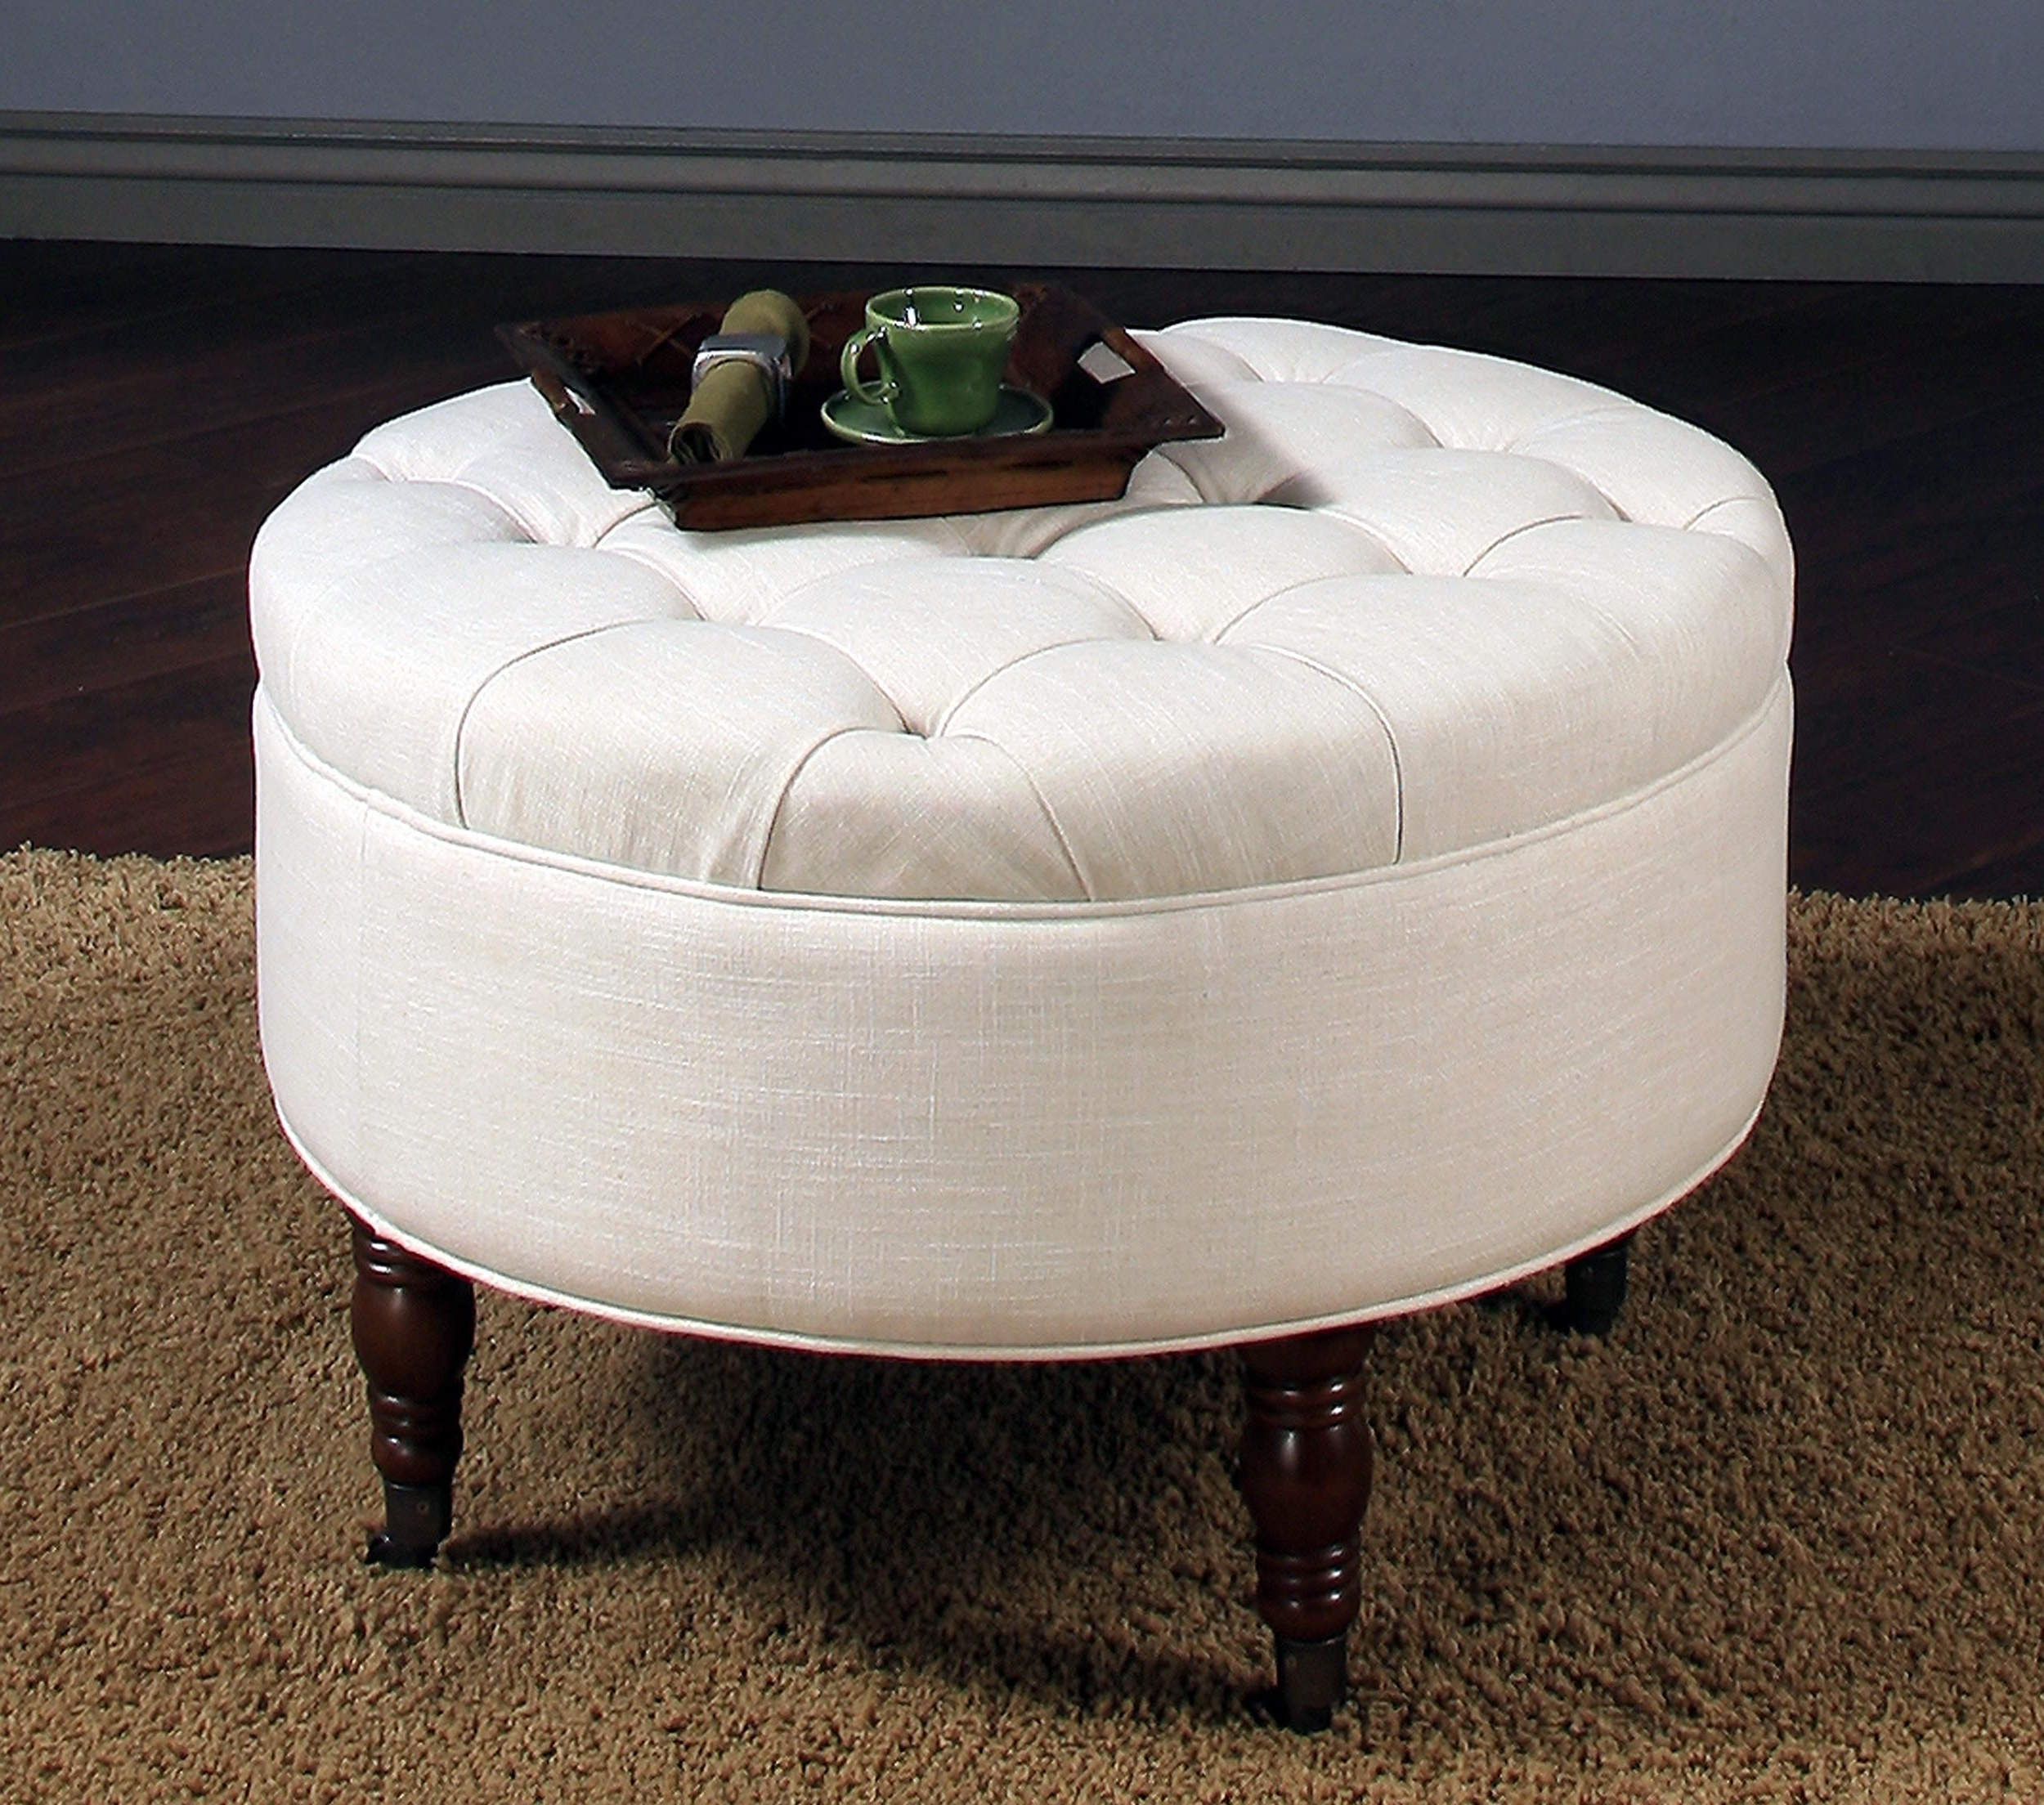 Newest Round Button Tufted Coffee Tables With Regard To Coffee Table: Round Tufted Storage Ottoman Coffee Table Design How (View 5 of 20)